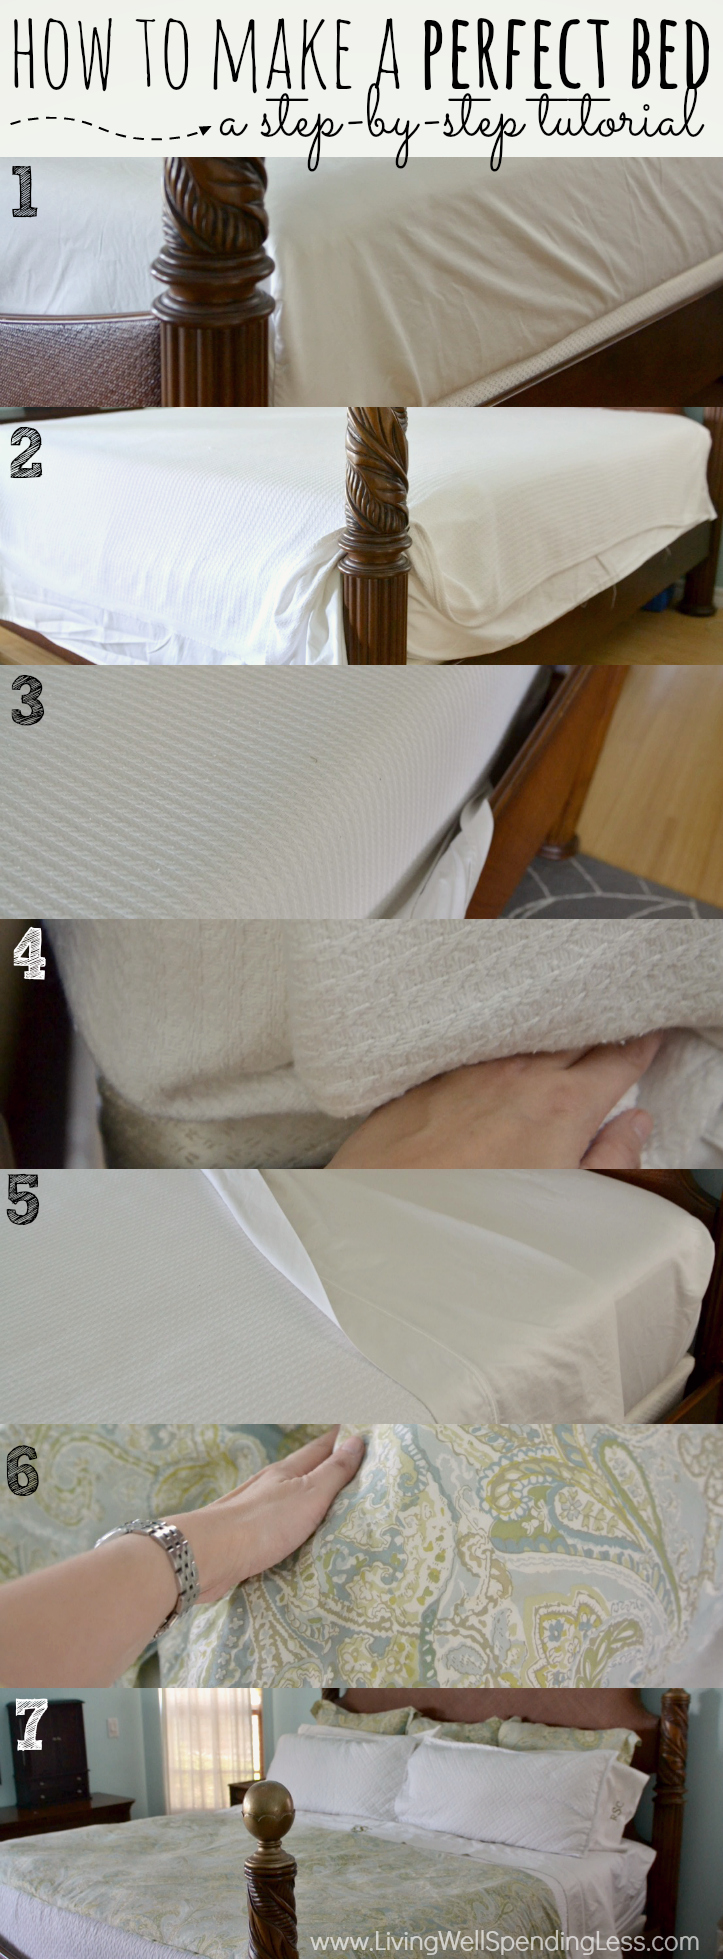 This step by step tutorial will teach you how to make the perfect bed.